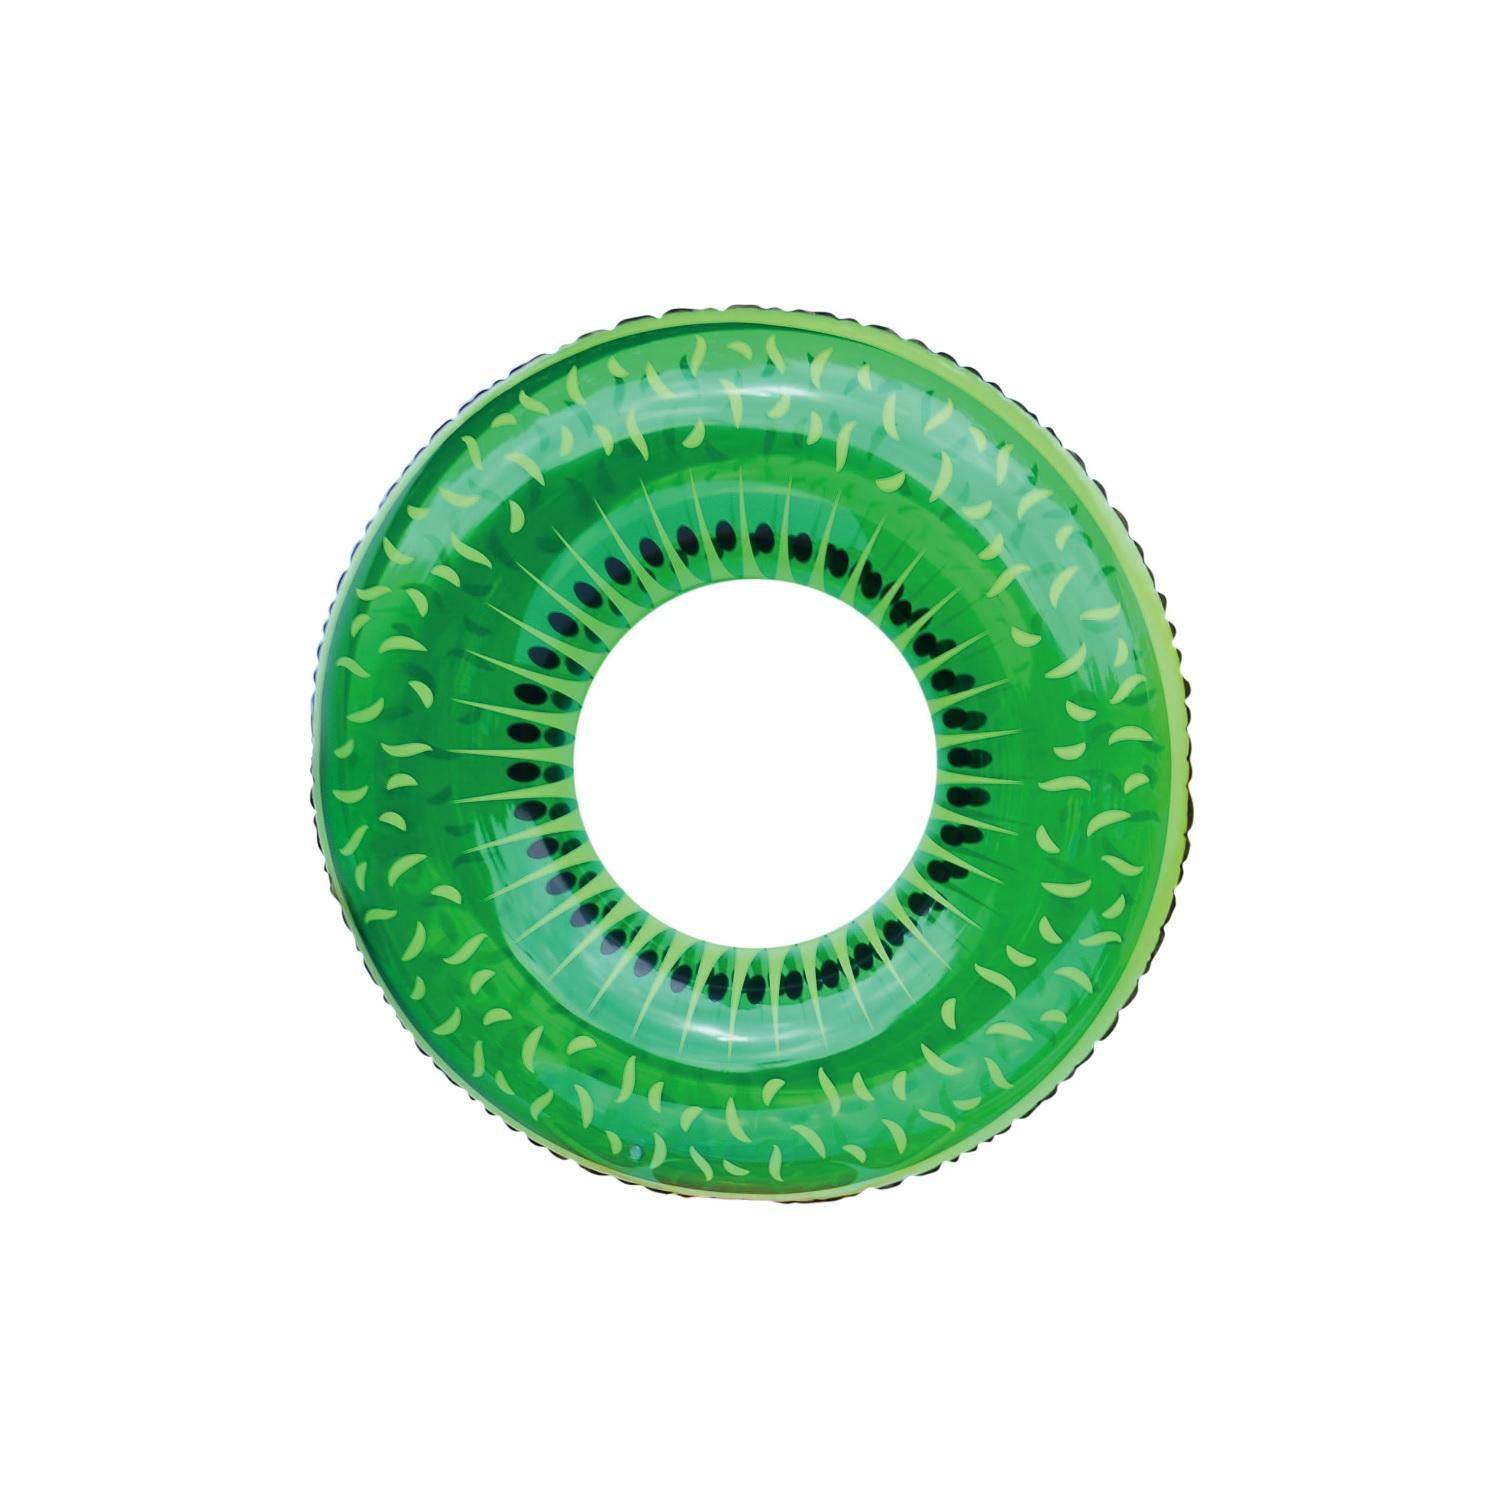 "42"" Green and Black Kiwi Fruit Inflatable Swimming Pool Inner Tube Ring Float"